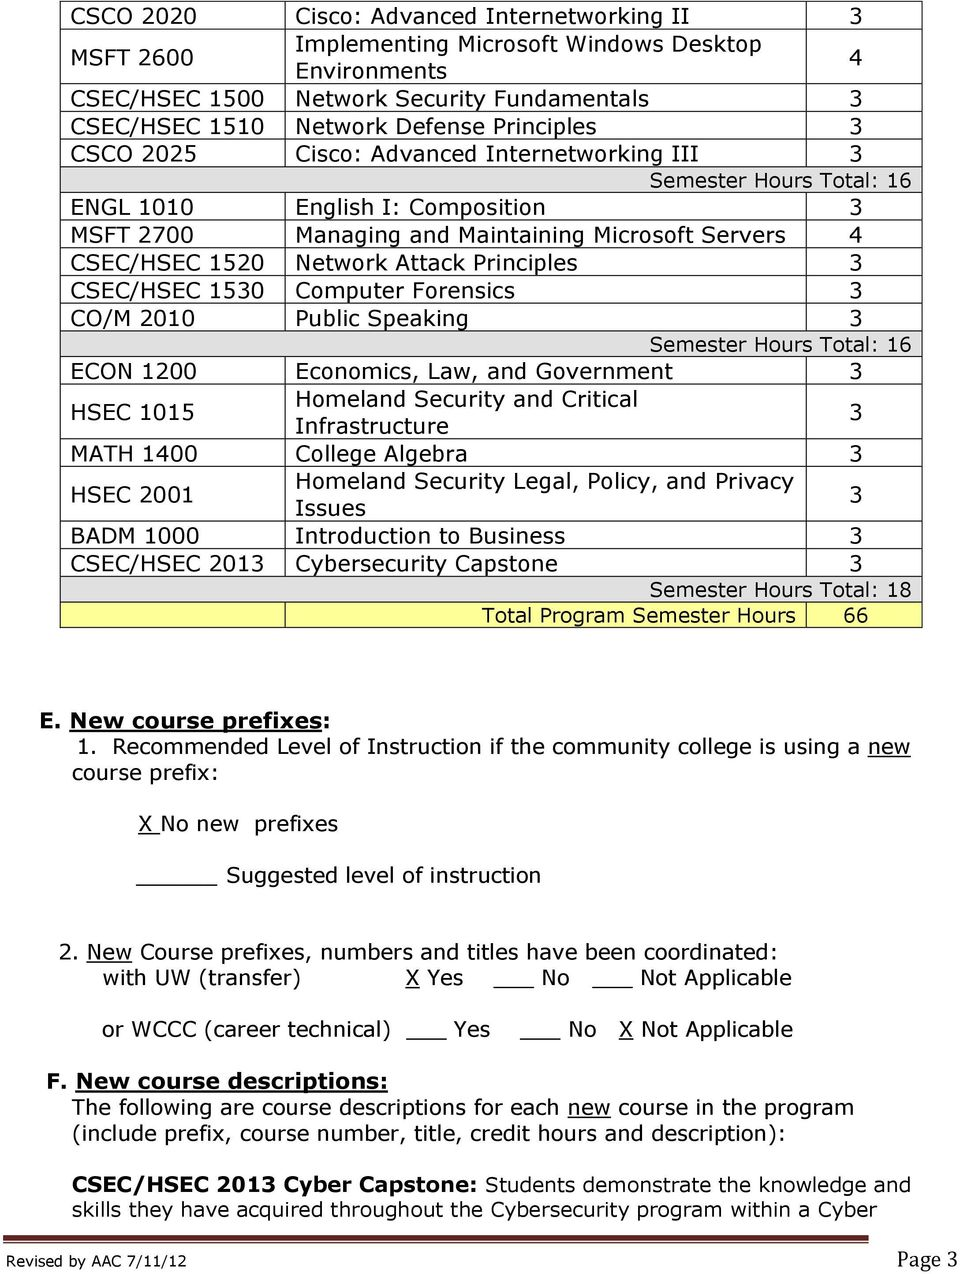 Principles 3 CSEC/HSEC 1530 Computer Forensics 3 CO/M 2010 Public Speaking 3 Semester Hours Total: 16 ECON 1200 Economics, Law, and Government 3 HSEC 1015 Homeland Security and Critical